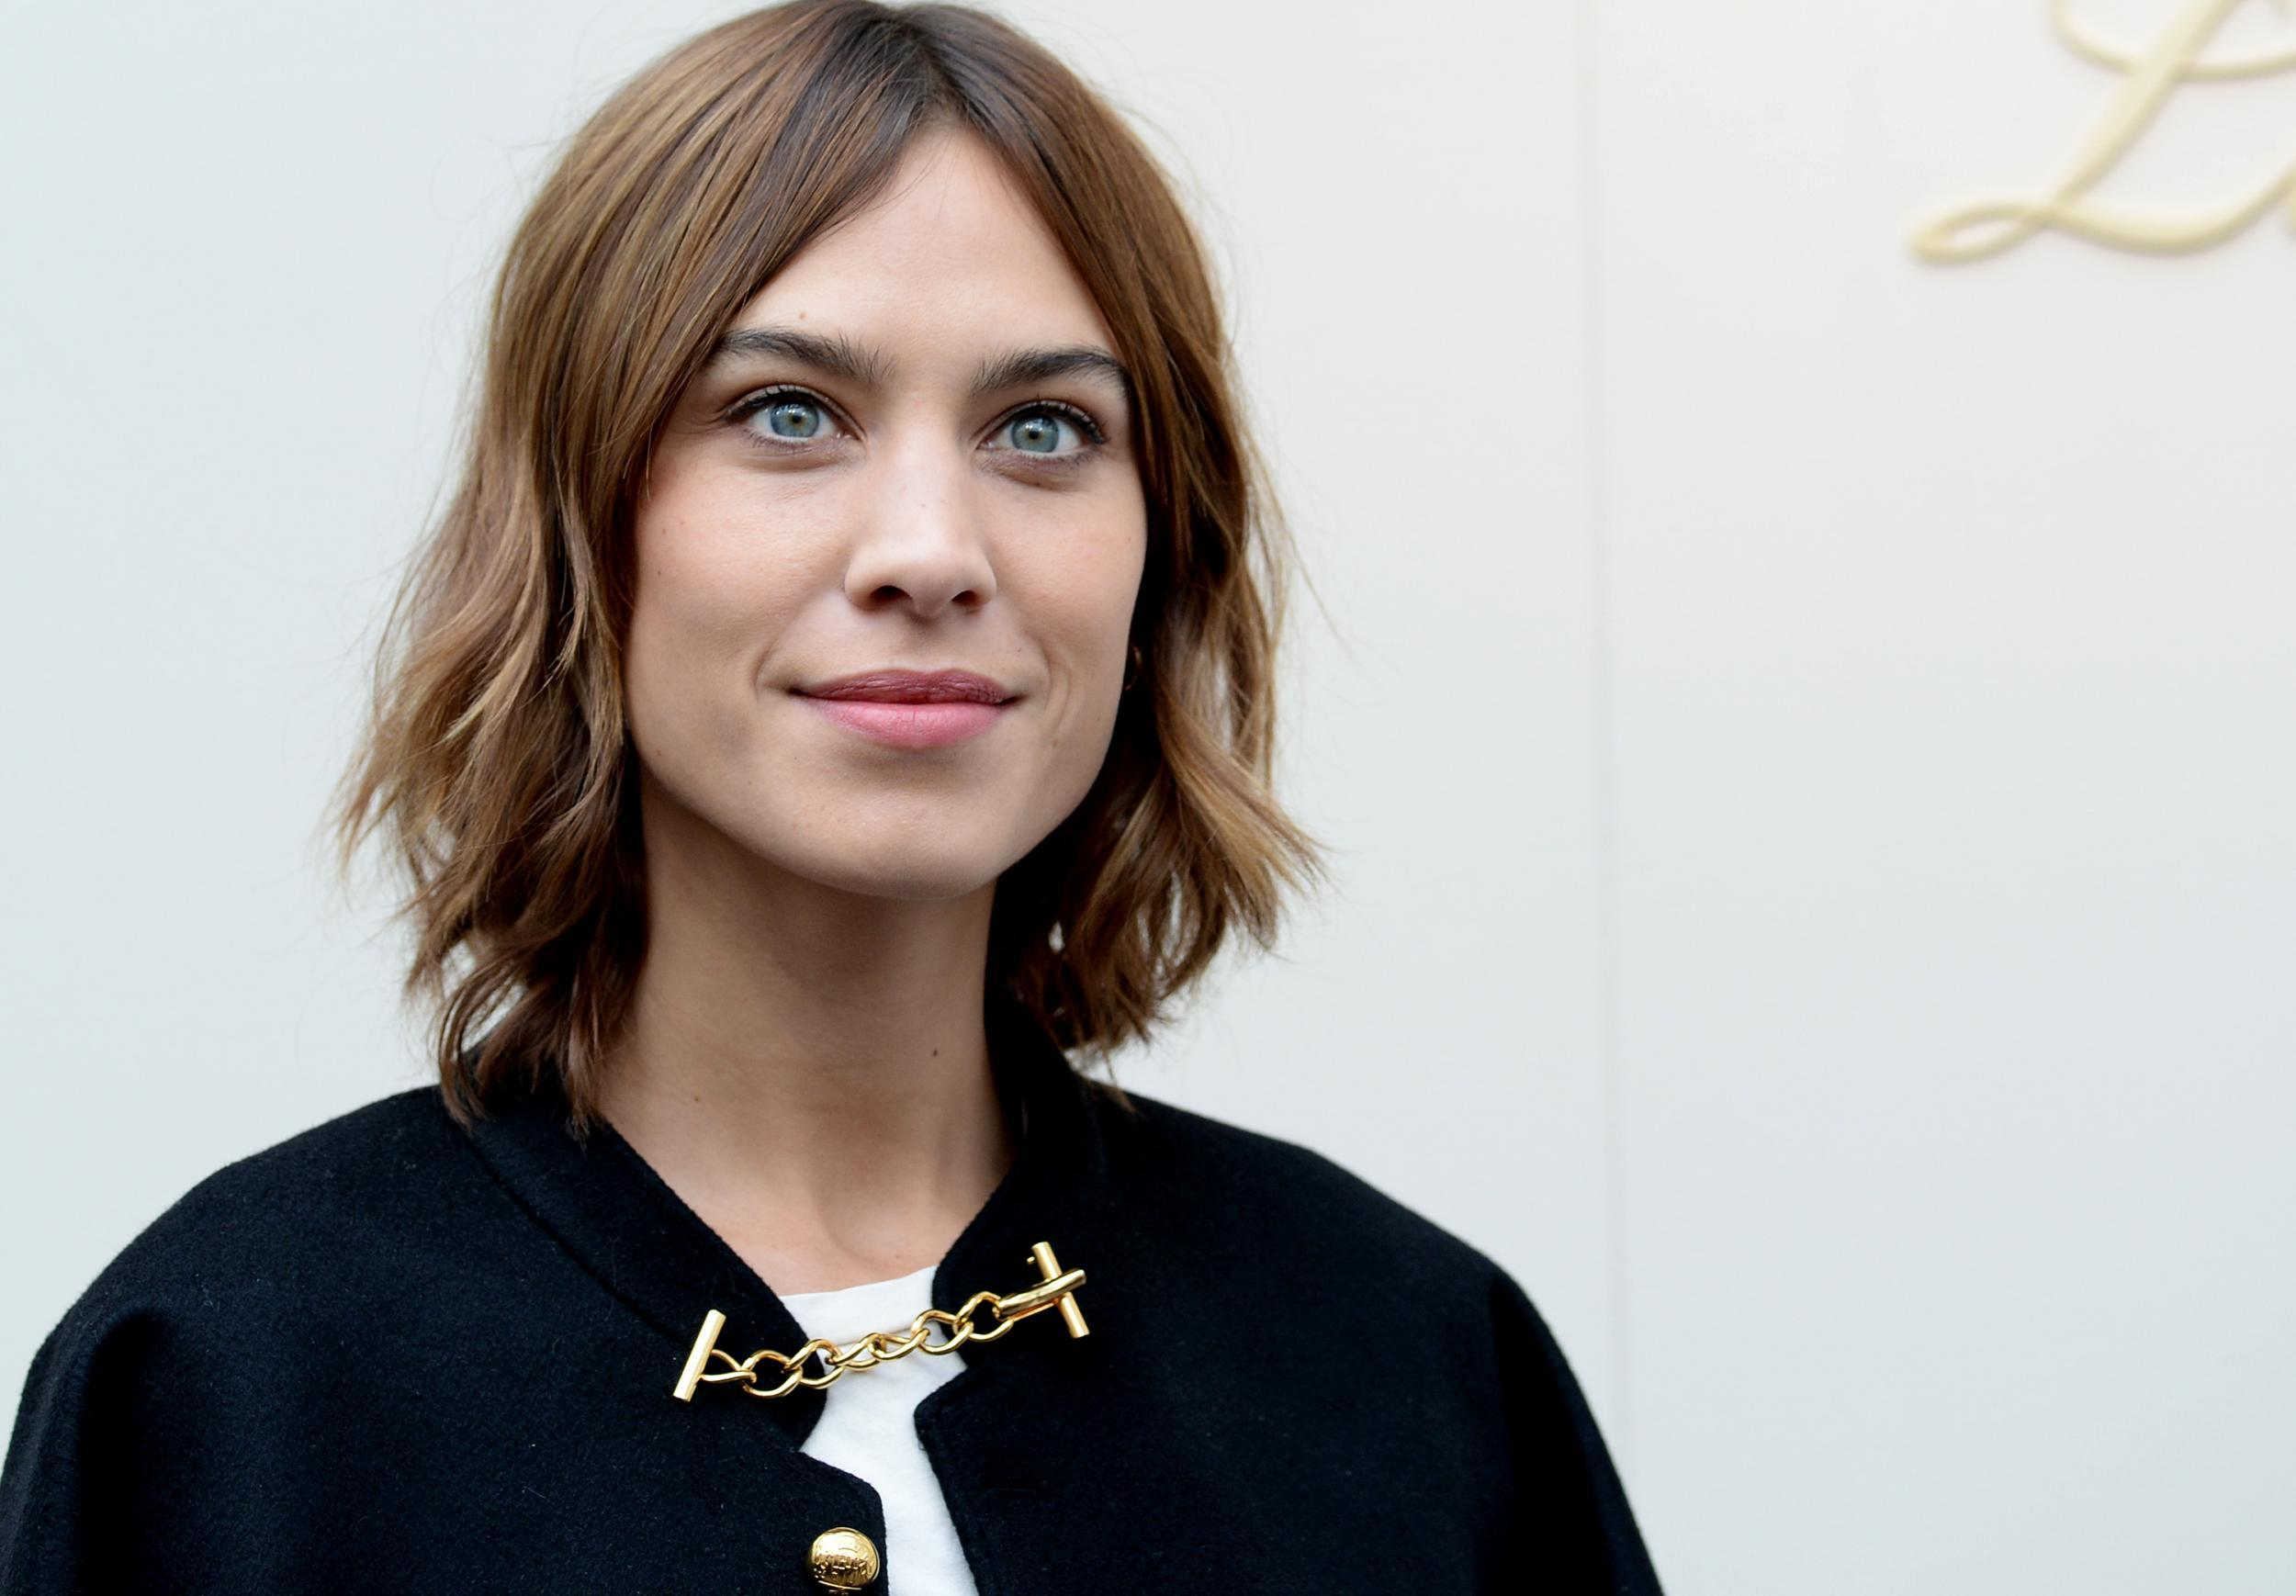 Photos Alexa Chung naked (48 images), Cleavage